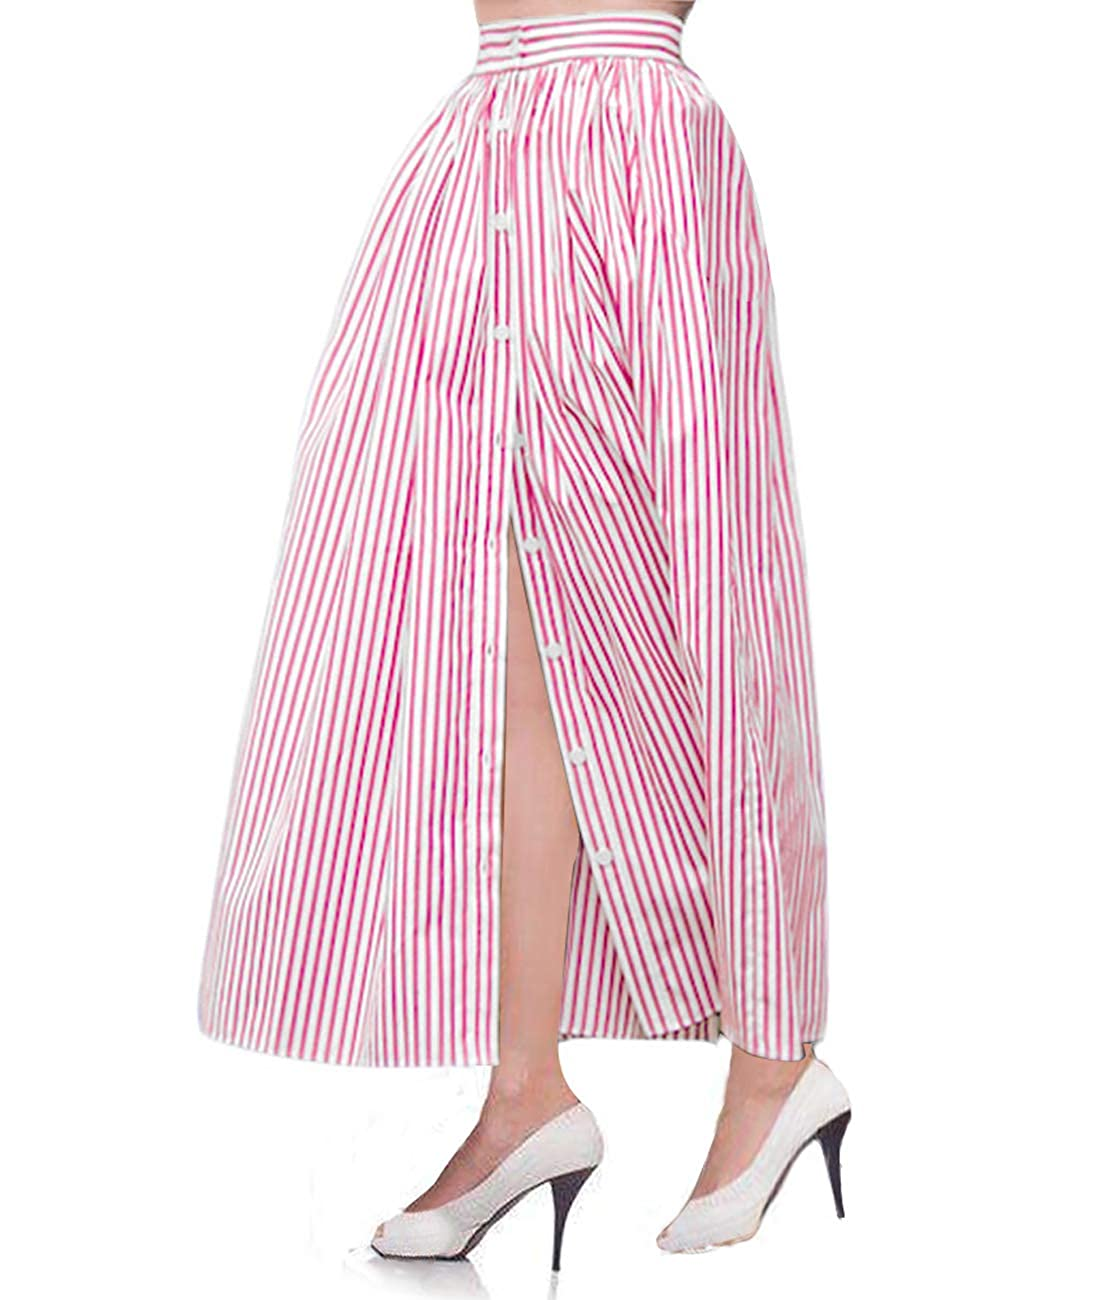 Saloon Girl Costume | Victorian Burlesque Dresses & History Lalagen Womens Striped Front Slit Ankle Length Button Front High Waist Maxi Skirt $22.99 AT vintagedancer.com